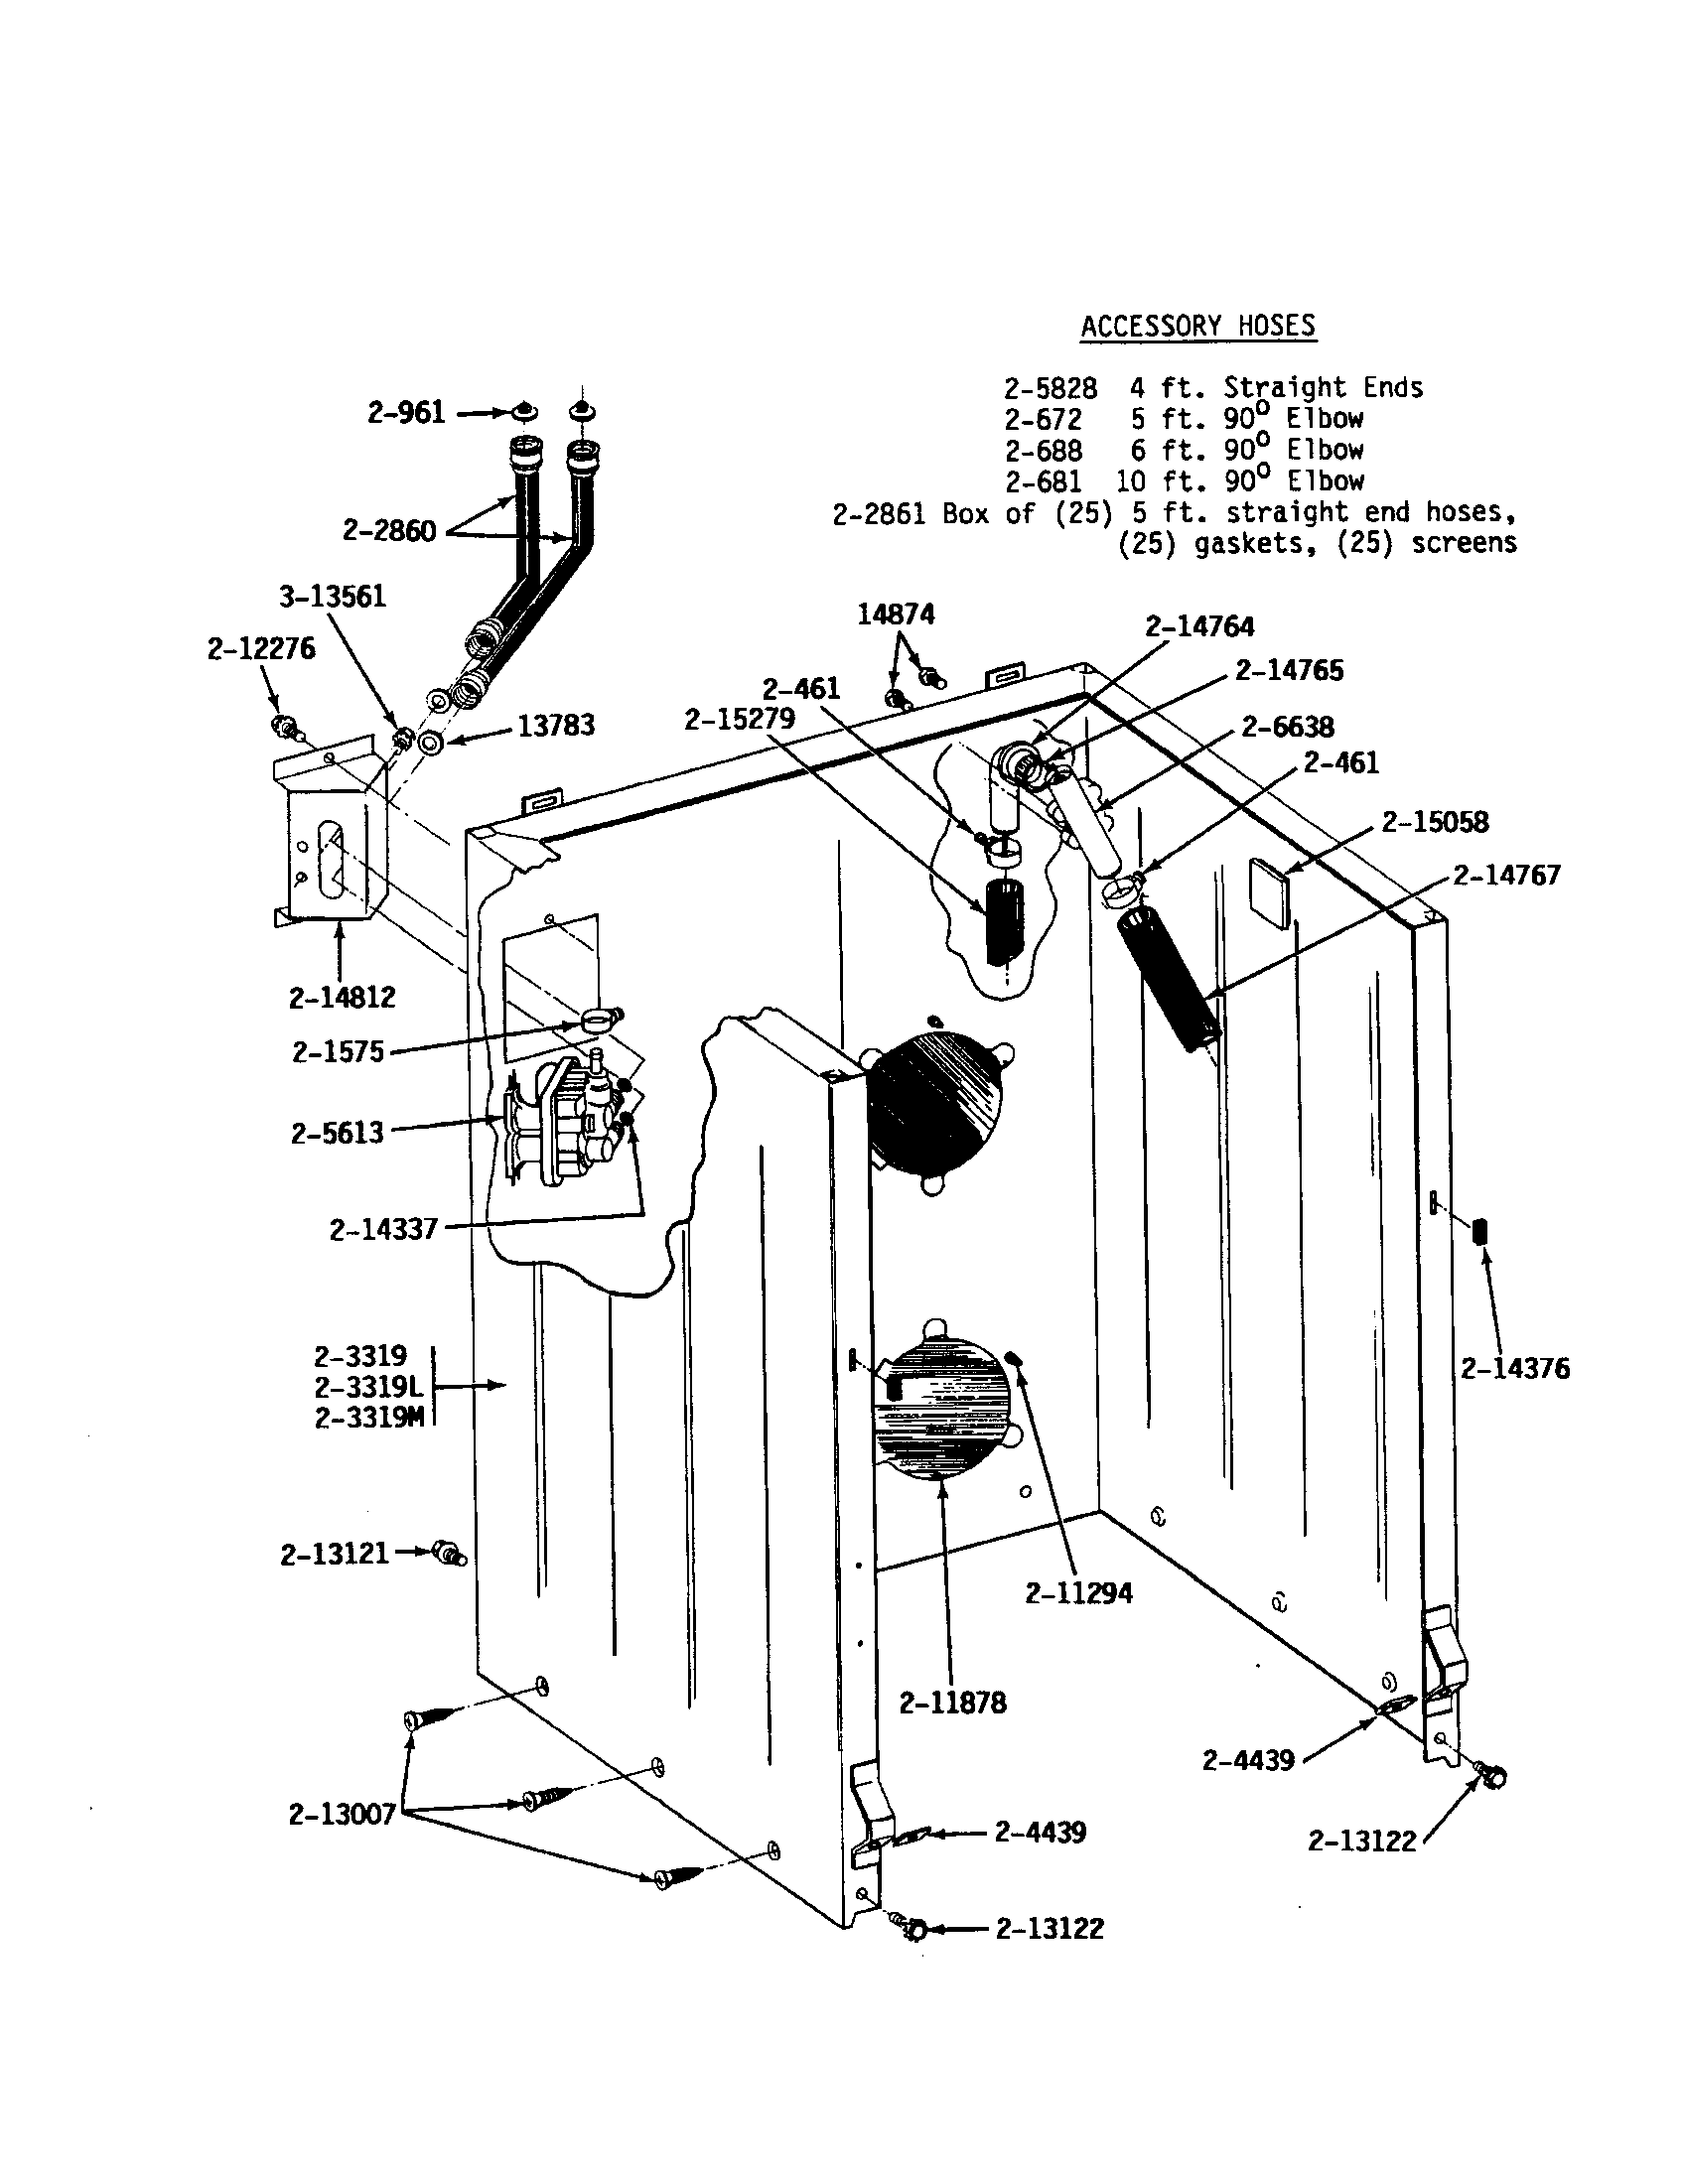 Maytag A512 cabinet/water system diagram